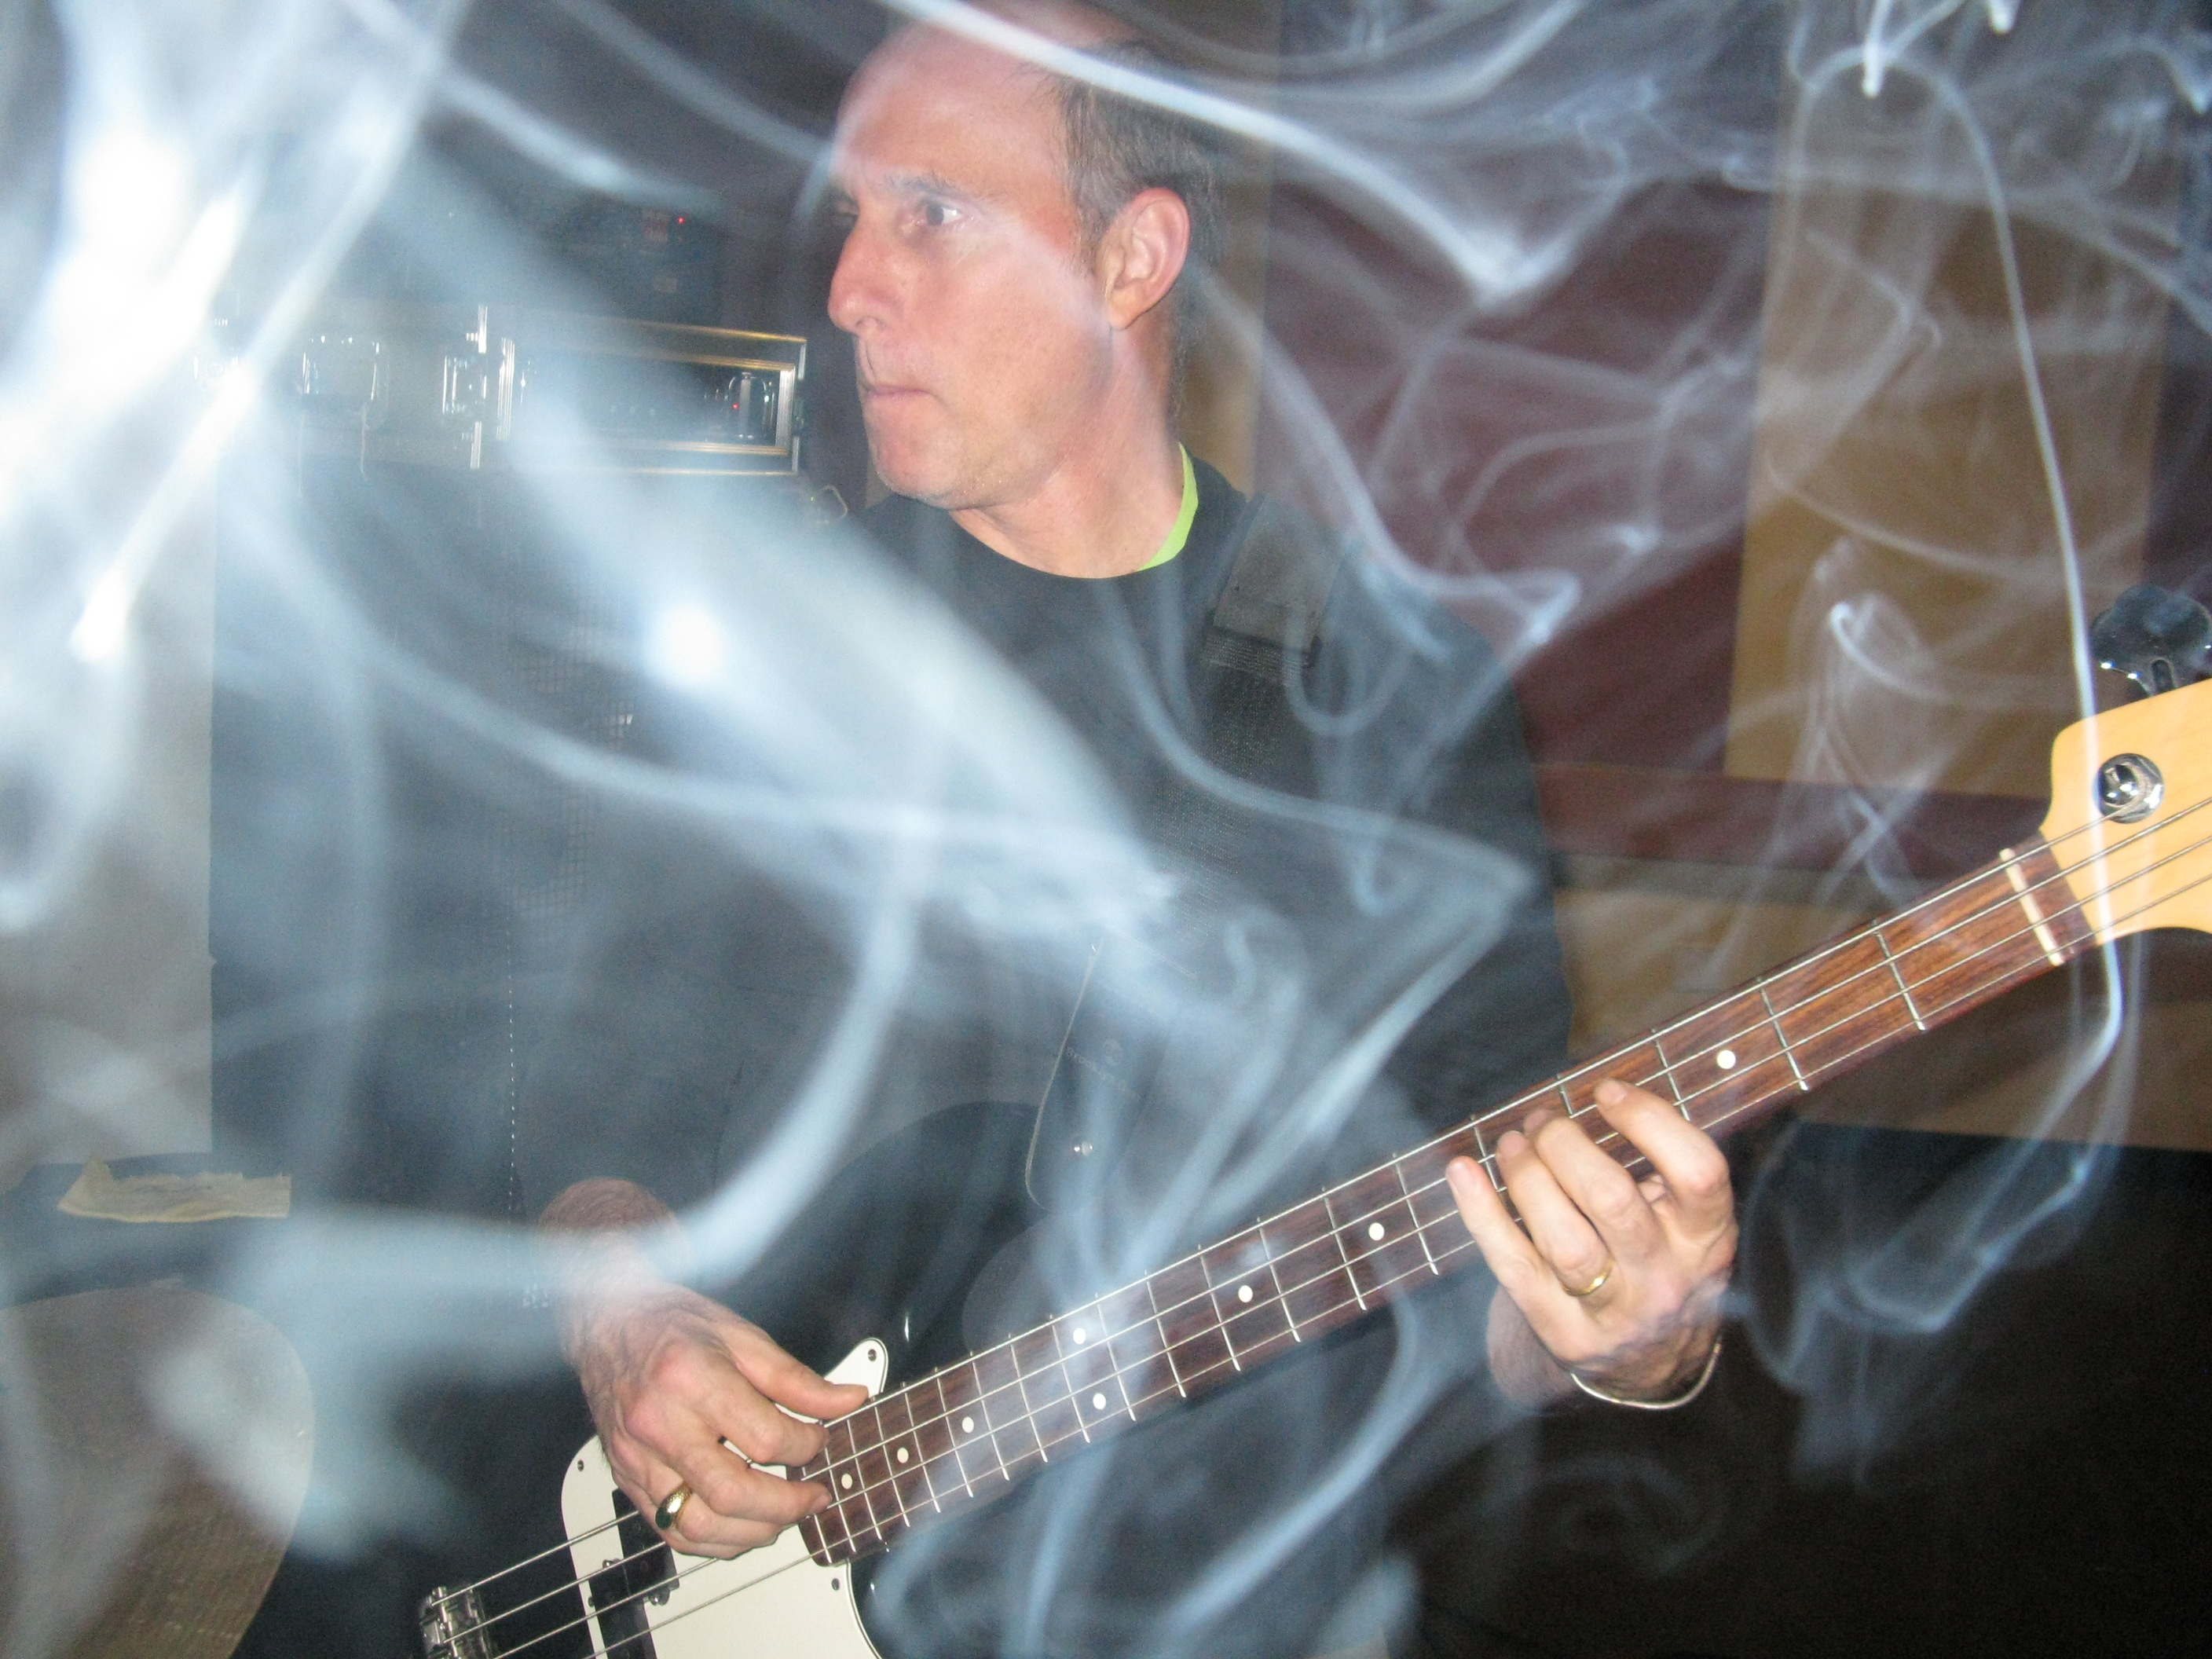 Bijll is a smoking bassist